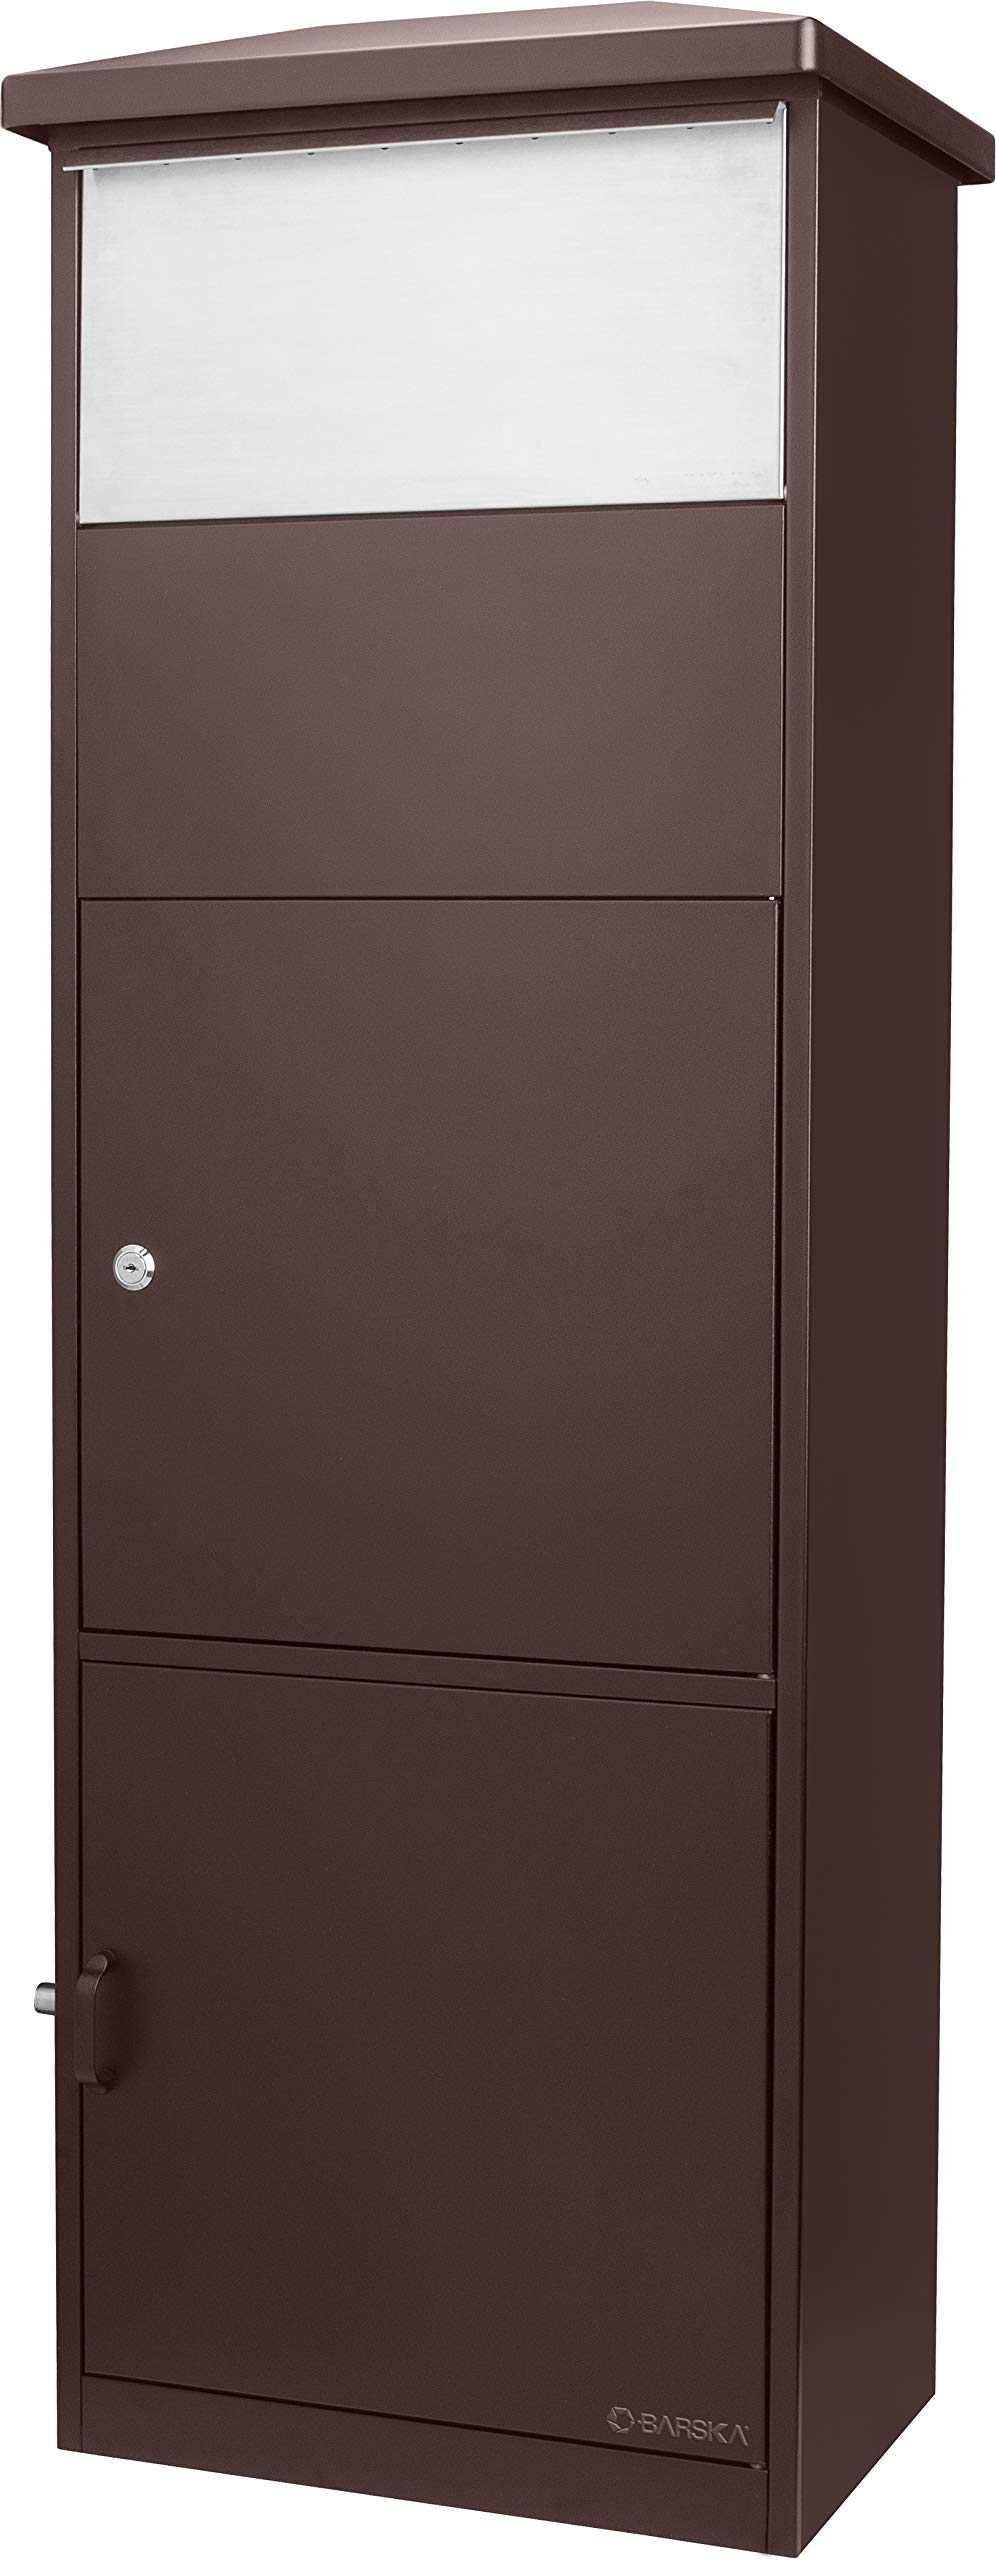 Barska Steel Freestanding Floor Lockable Large Drop Slot Mail Box Safe with Parcel Compartment, (Brown)